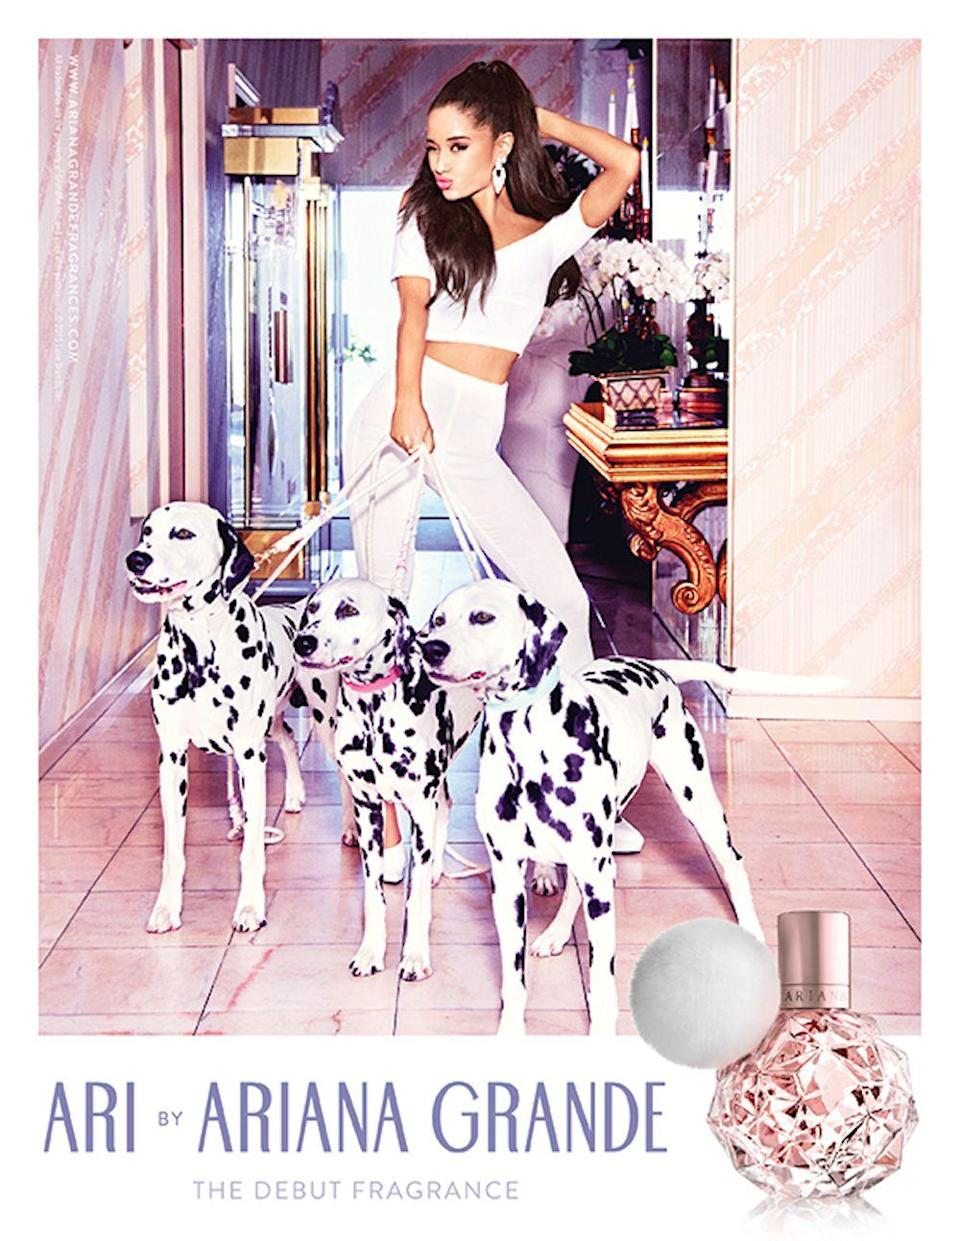 <p>I know she's trying to sell me perfume, but I just want the dogs. </p>